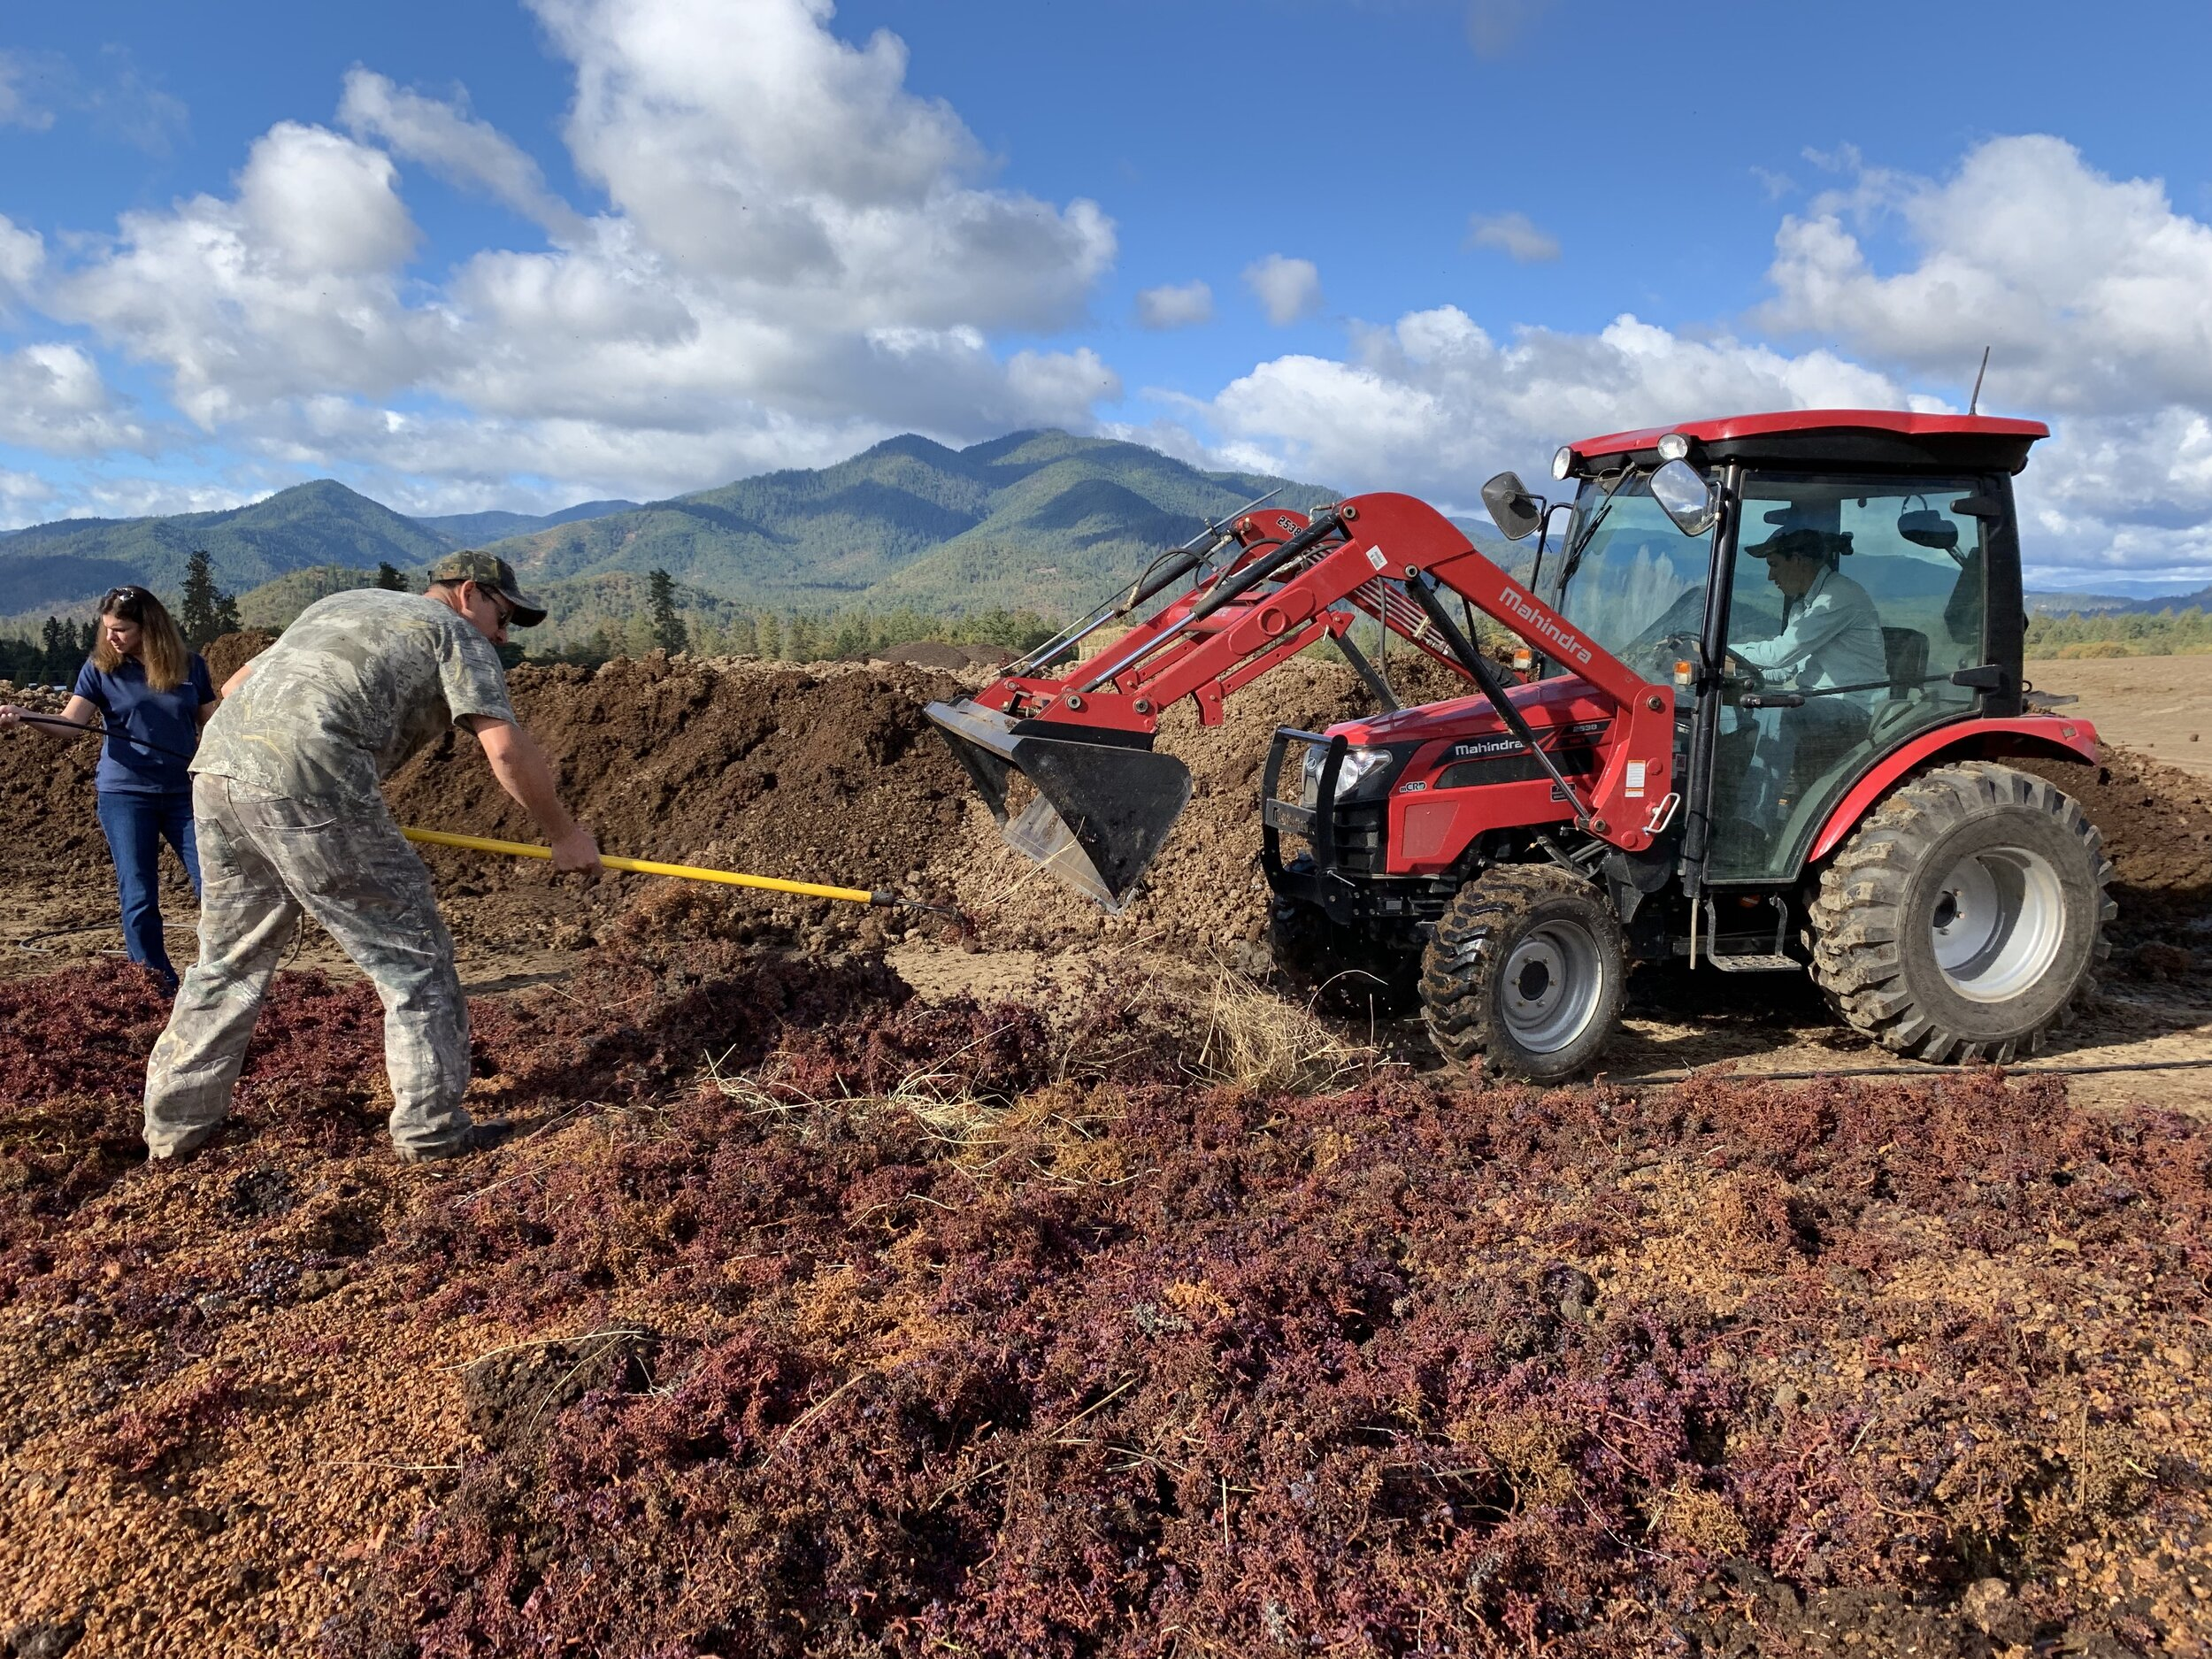 Adding pomace from the press to organic manure to build our compost piles at Troon Vineyard in Oregon's Applegate Valley. Compost is the foundation of biodynamic, regenerative agriculture.